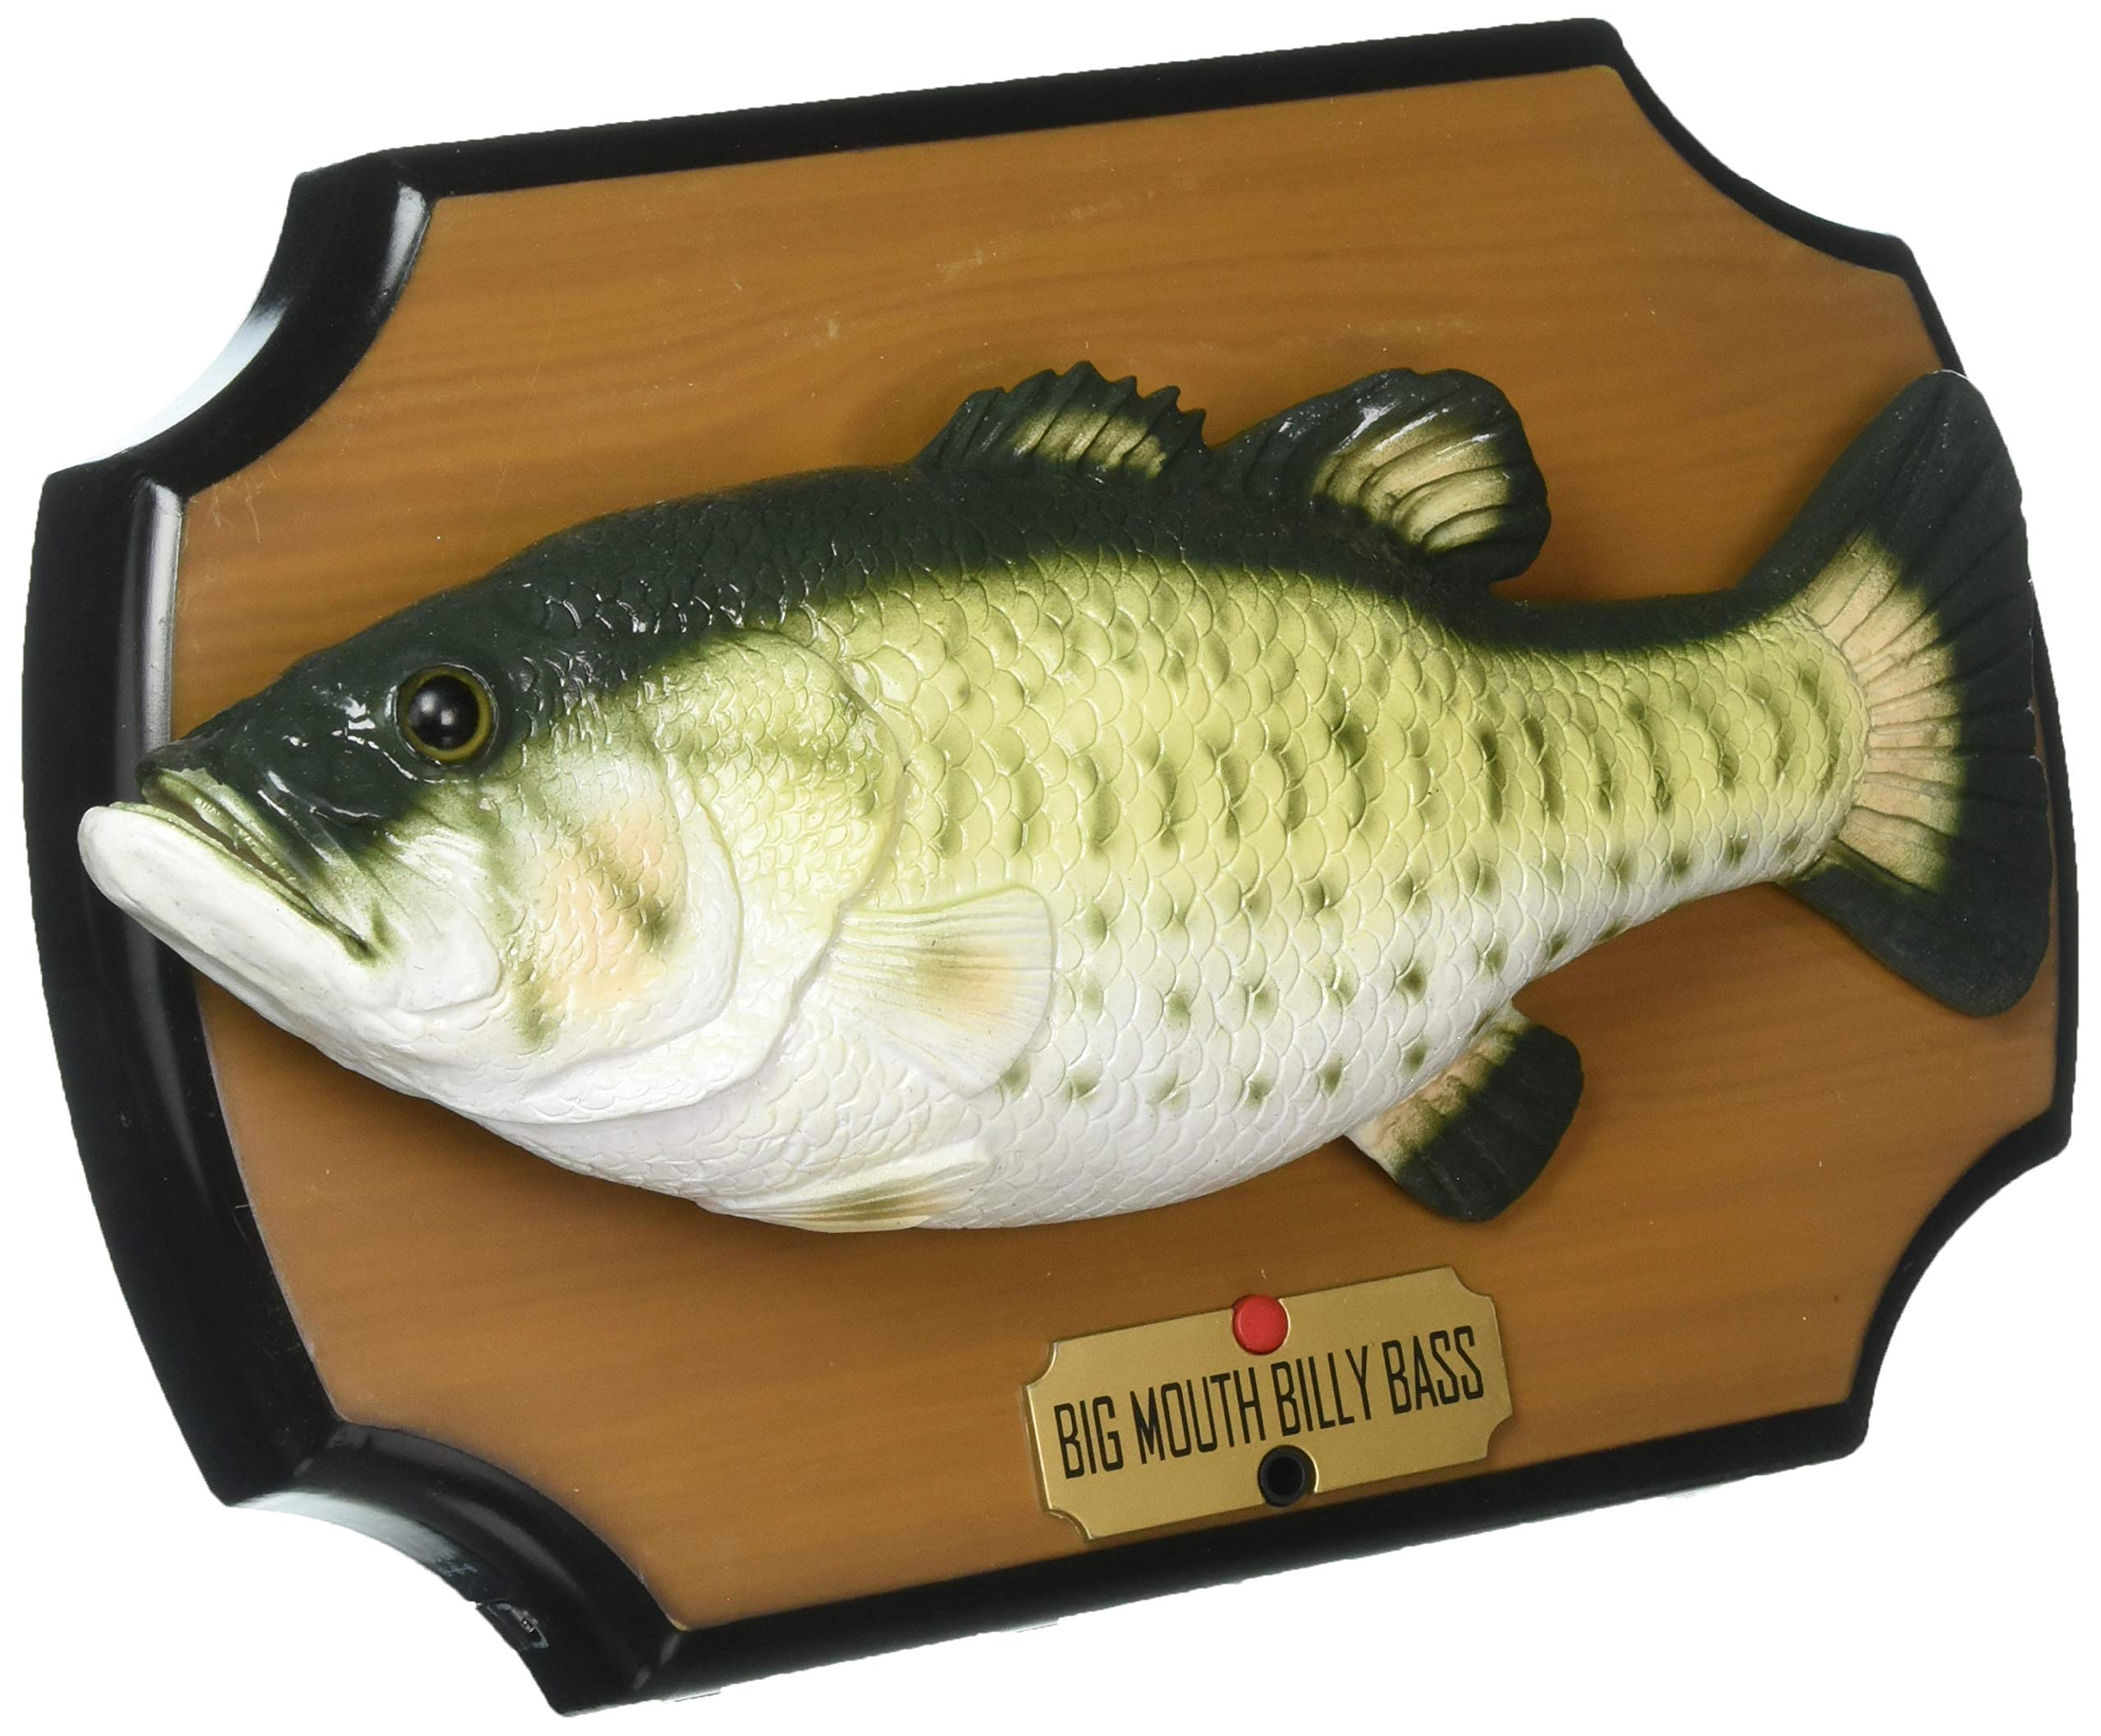 The Original Big Mouth Billy Bass Singing Sensation Fish Motion Activated by Sunstar